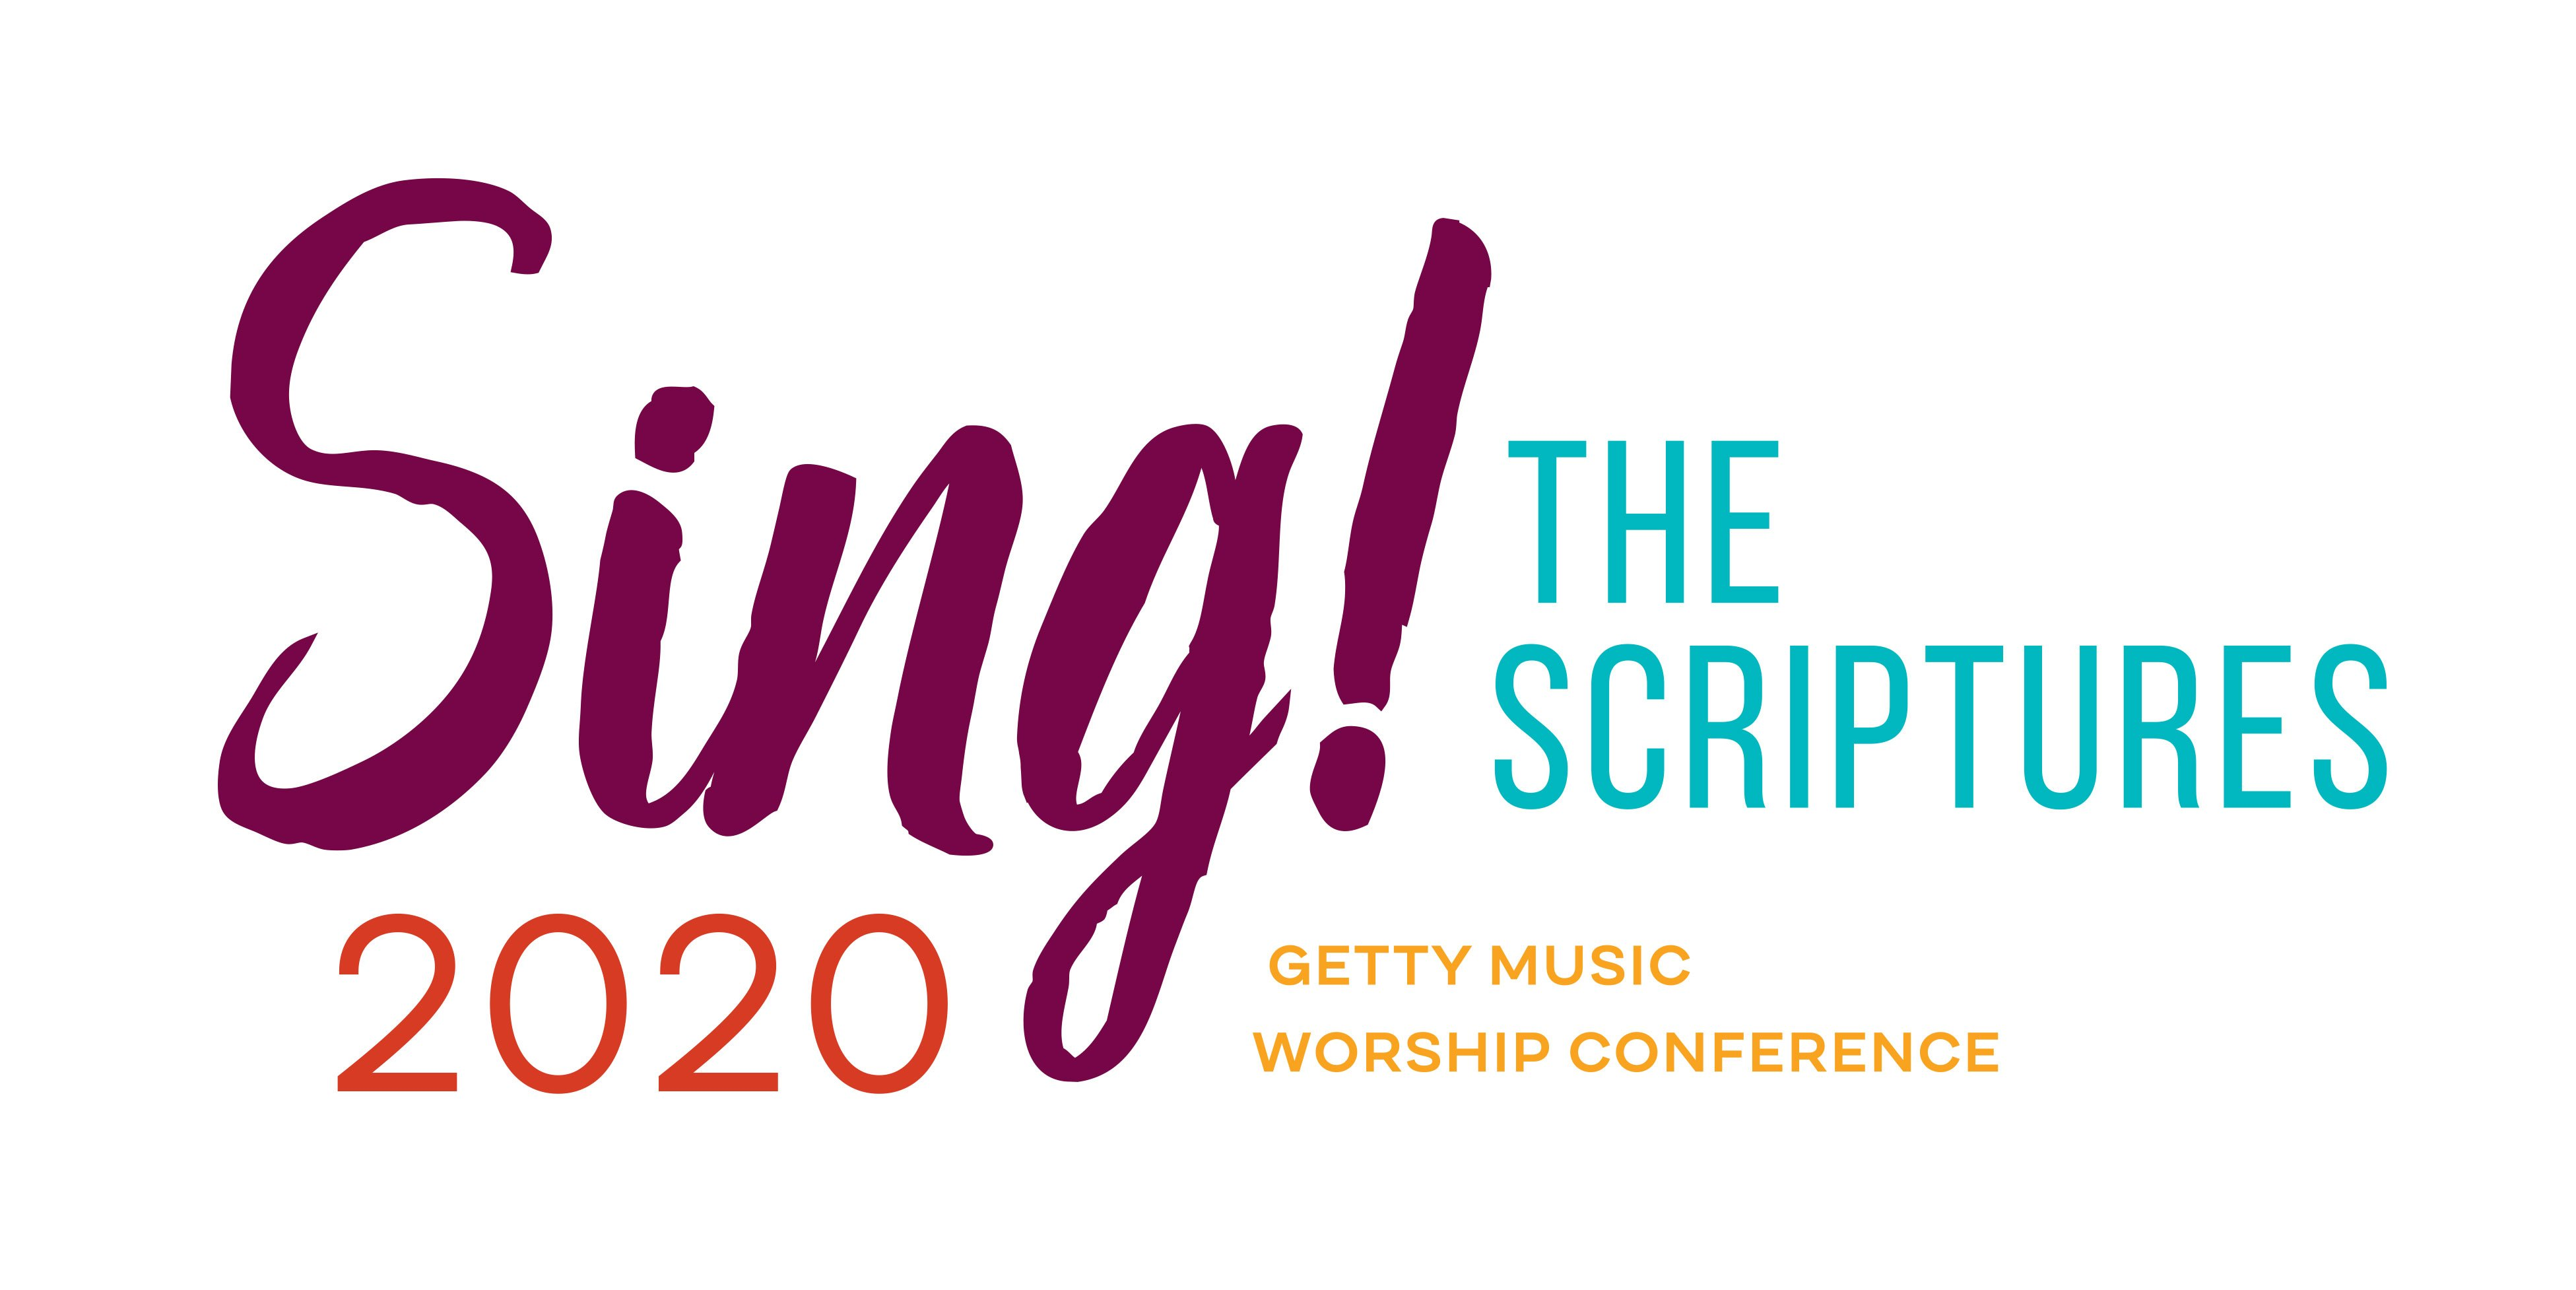 Home - Sing! 2020 · Getty Music Worship Conference